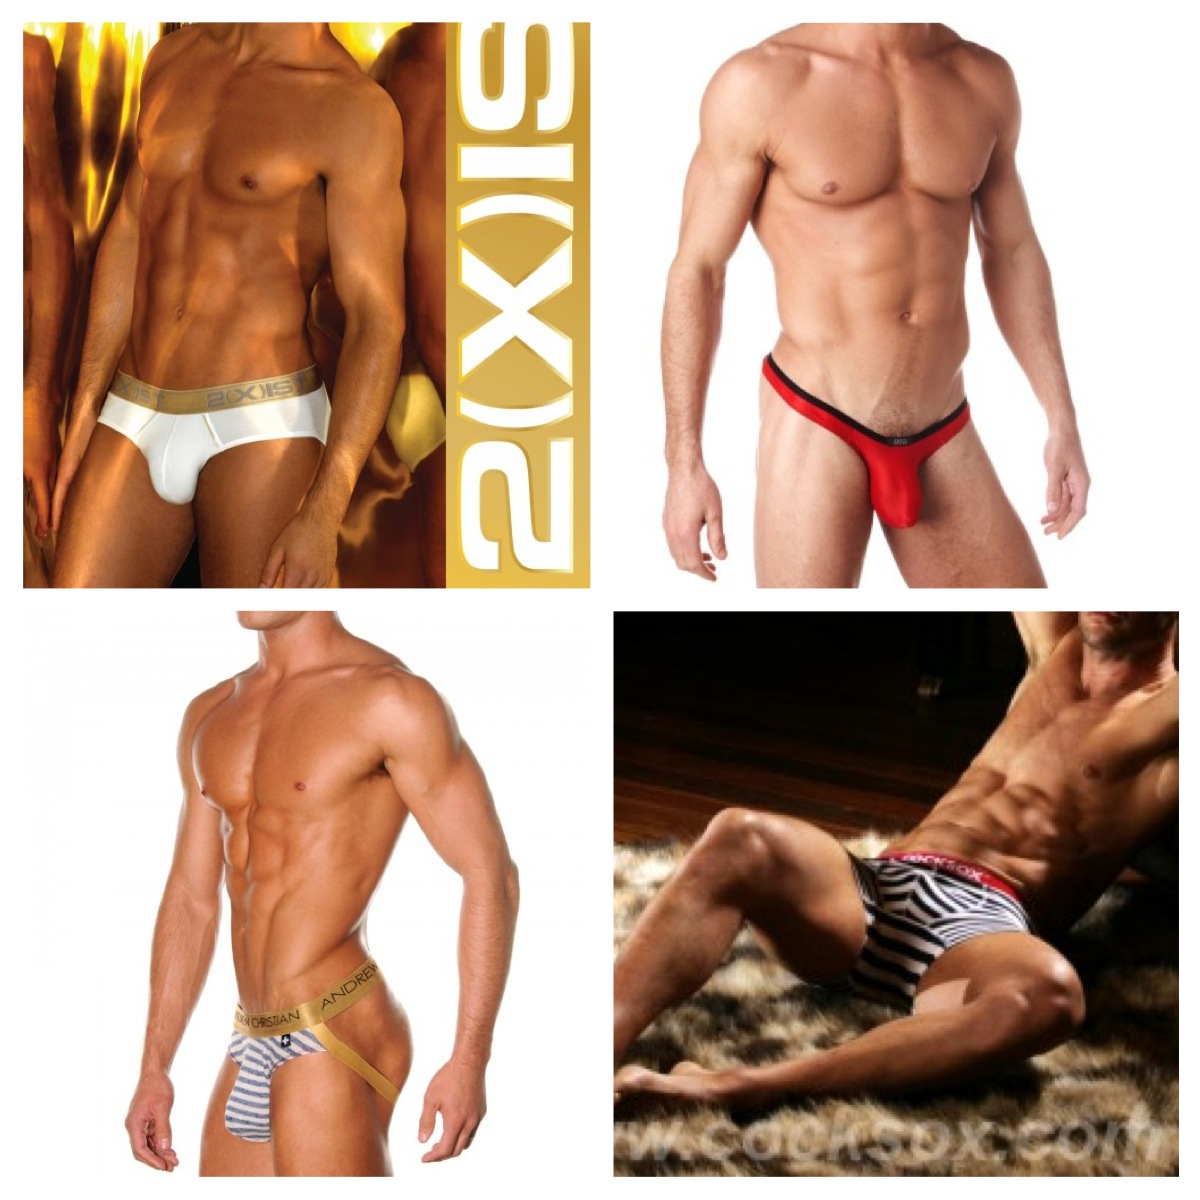 Vote for Underwear of the Month for September